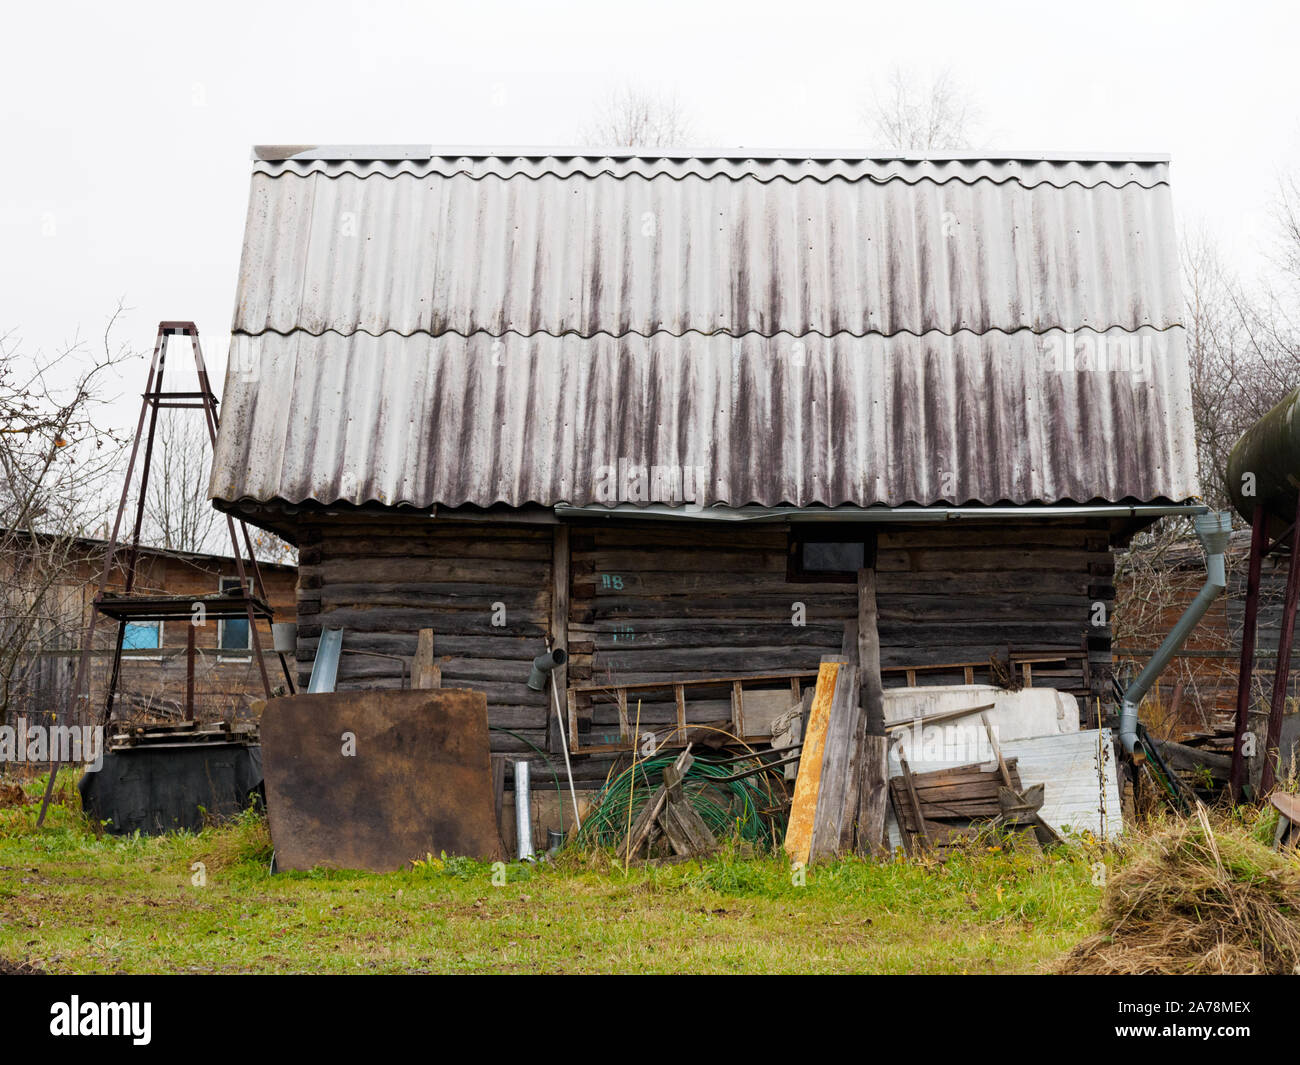 Old shed in the village of wooden beams and slate roof Stock Photo